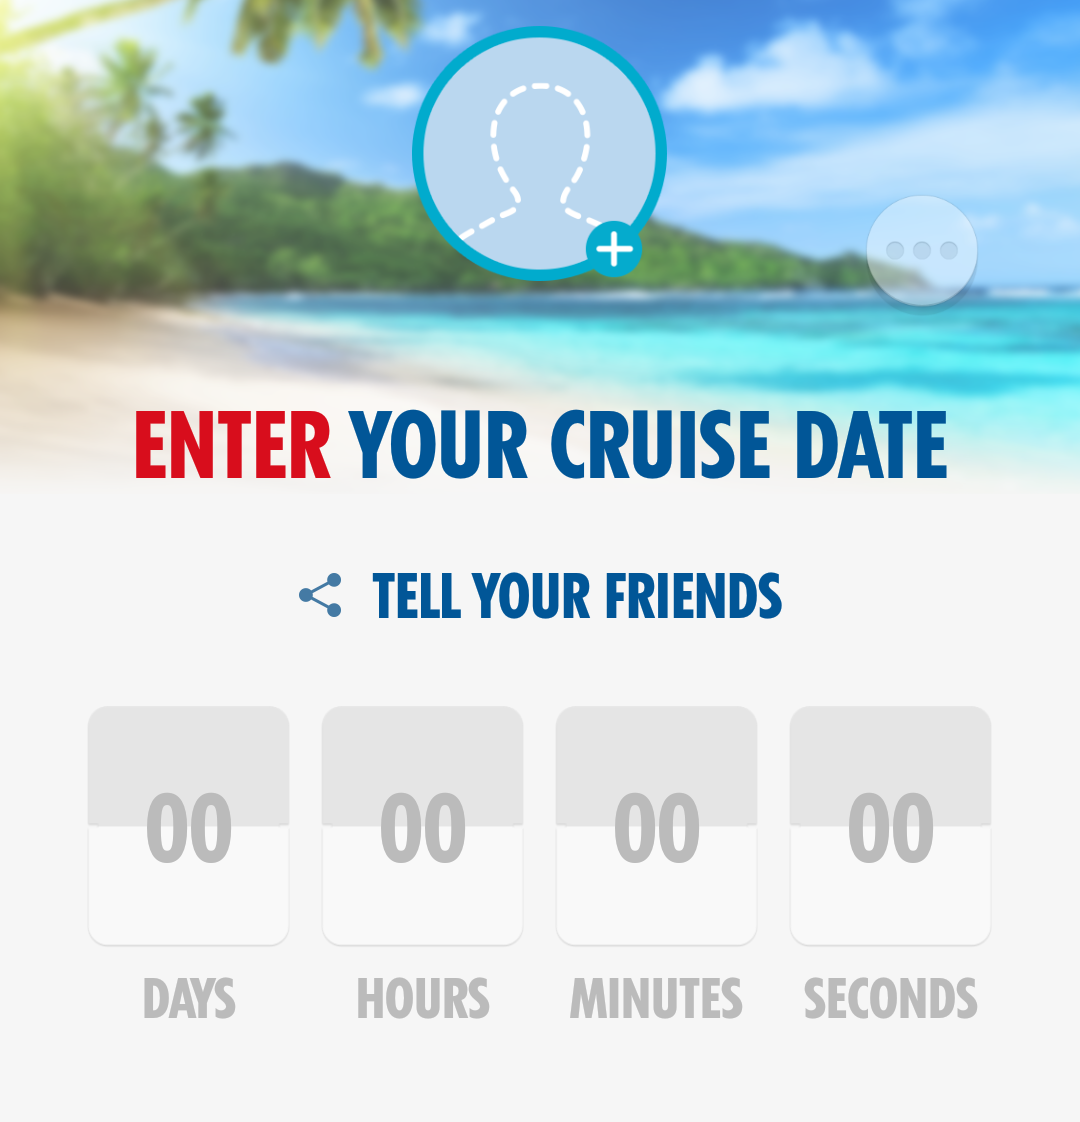 Enter the date your cruise sets sail and a funky countdown clock will be created, which you can share for bragging rights.